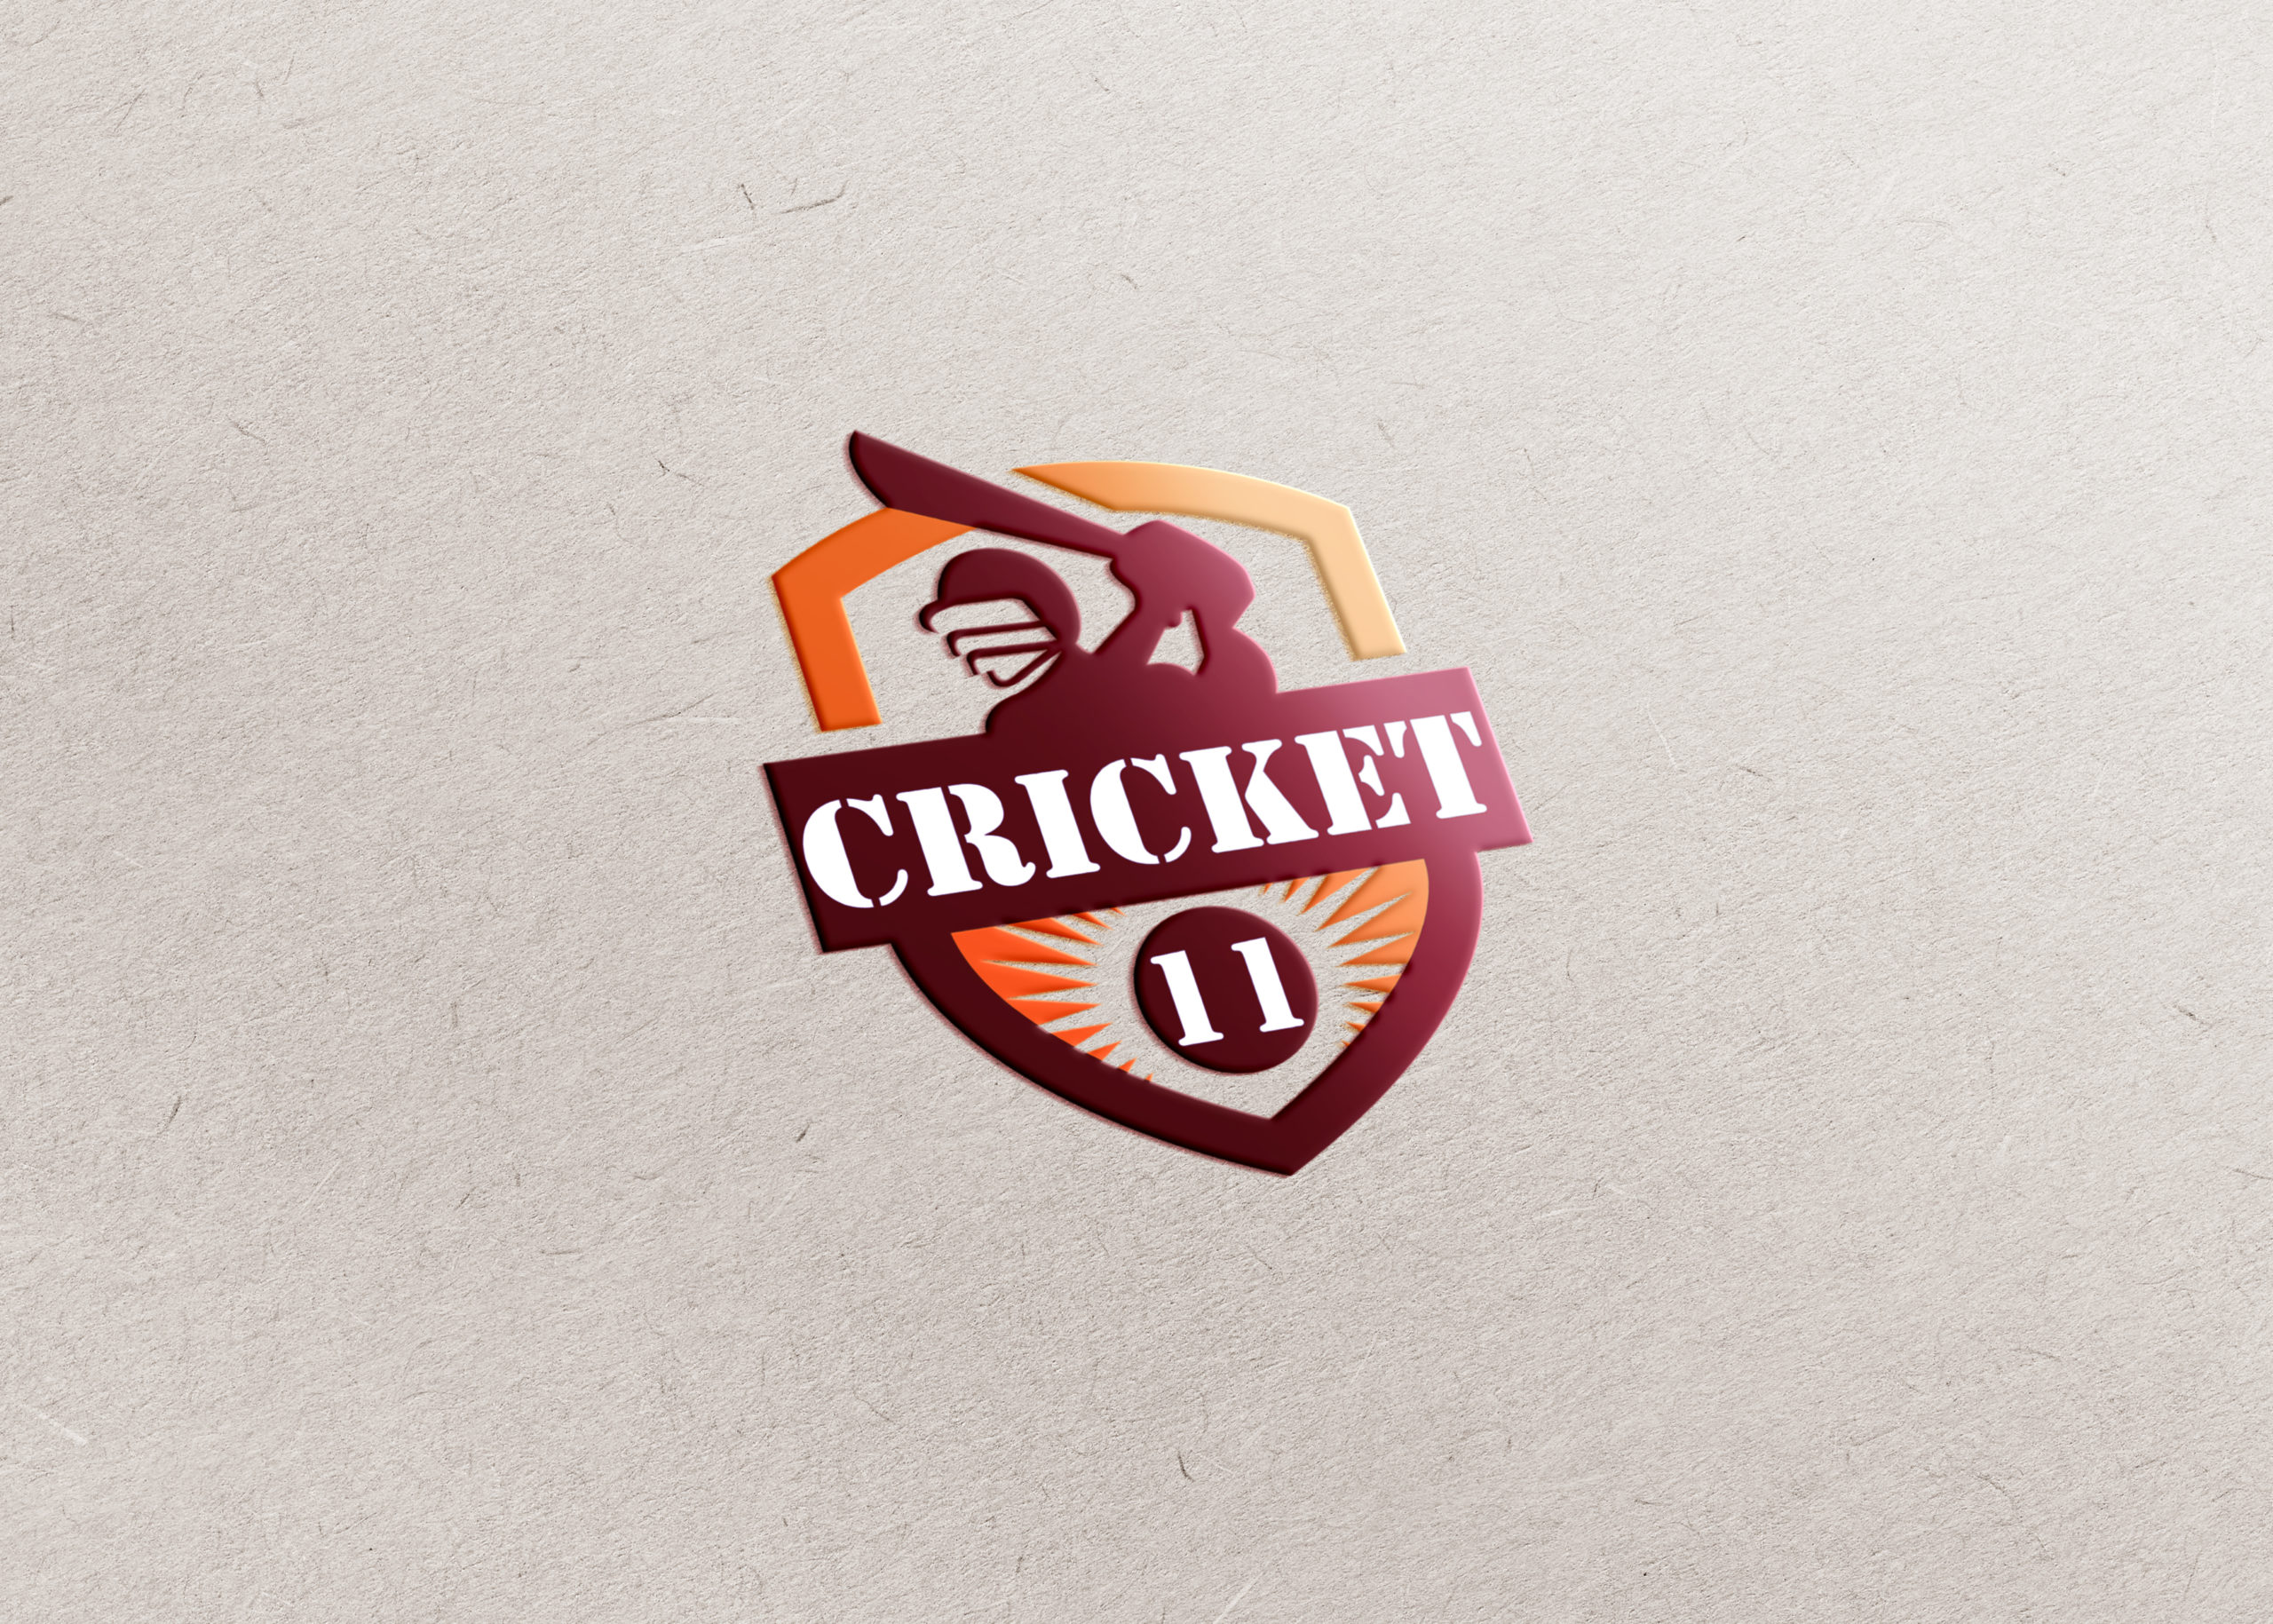 online cricket game app logo design by Badri Design